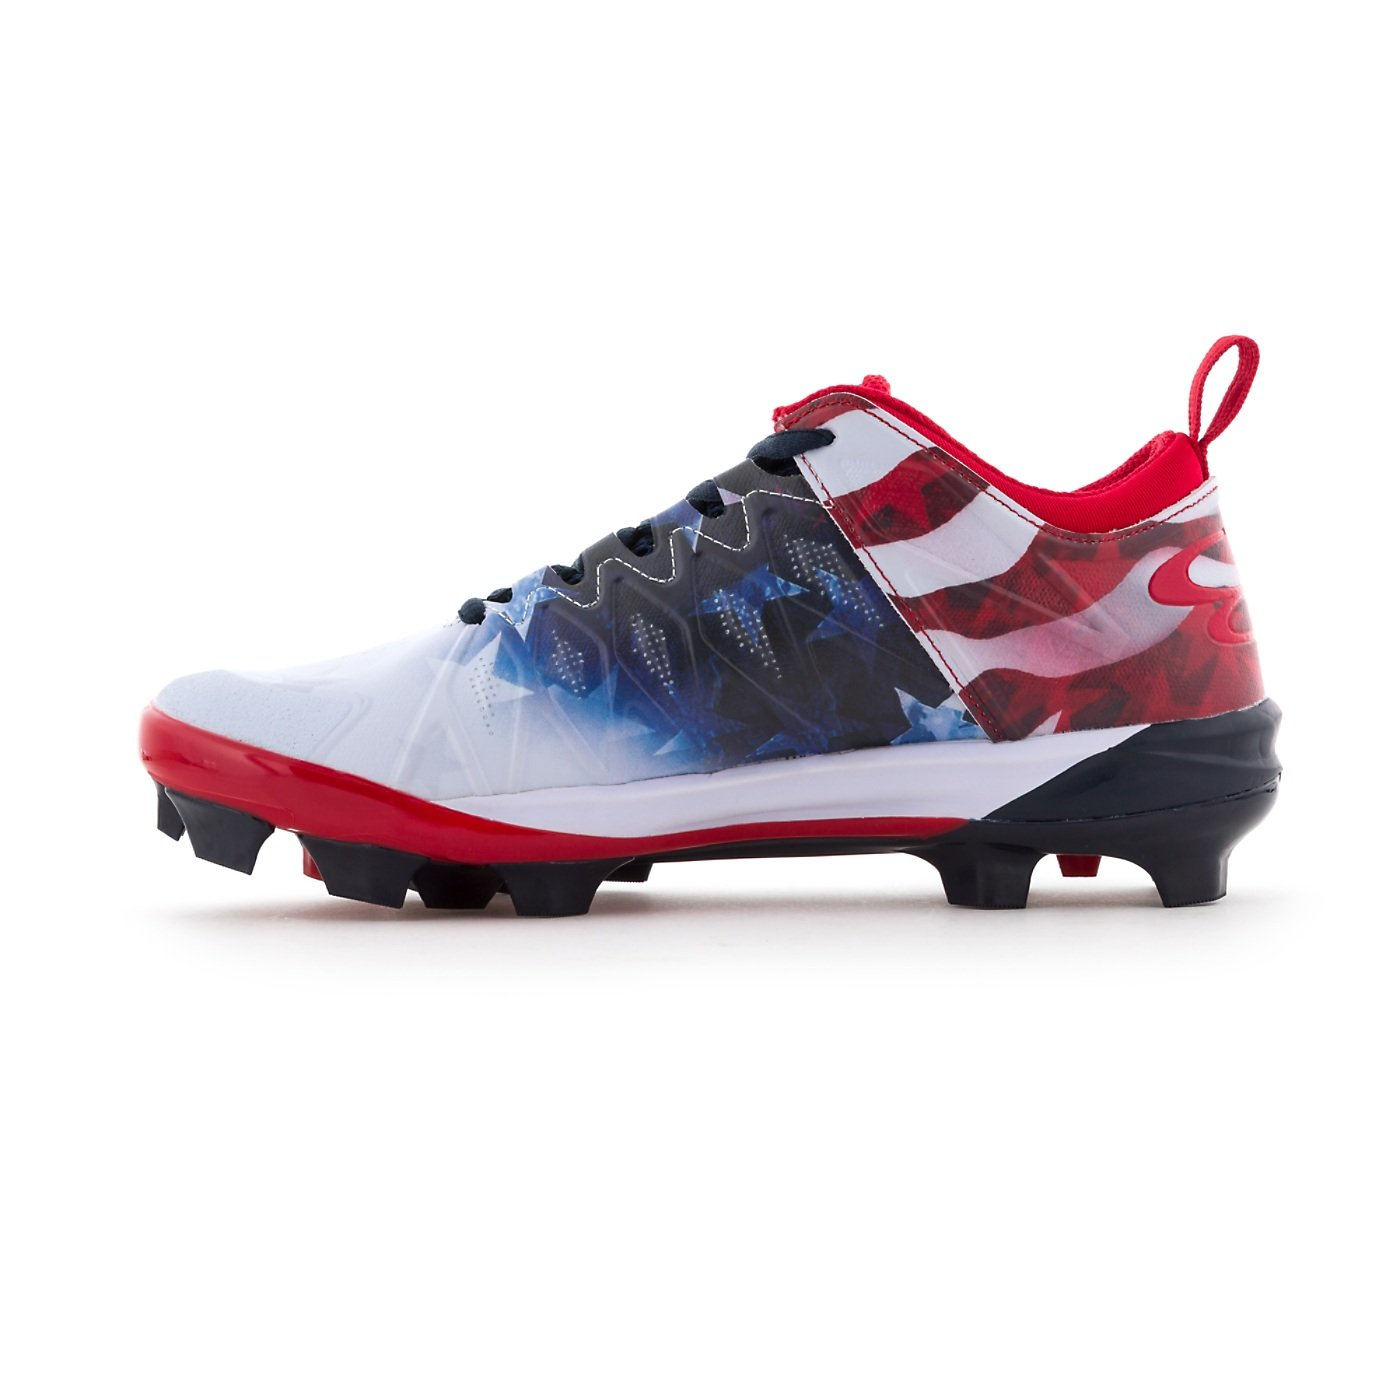 Boombah Women's Squadron Flag Molded Cleats Royal Blue/Red/White - Size 9.5 by Boombah (Image #4)